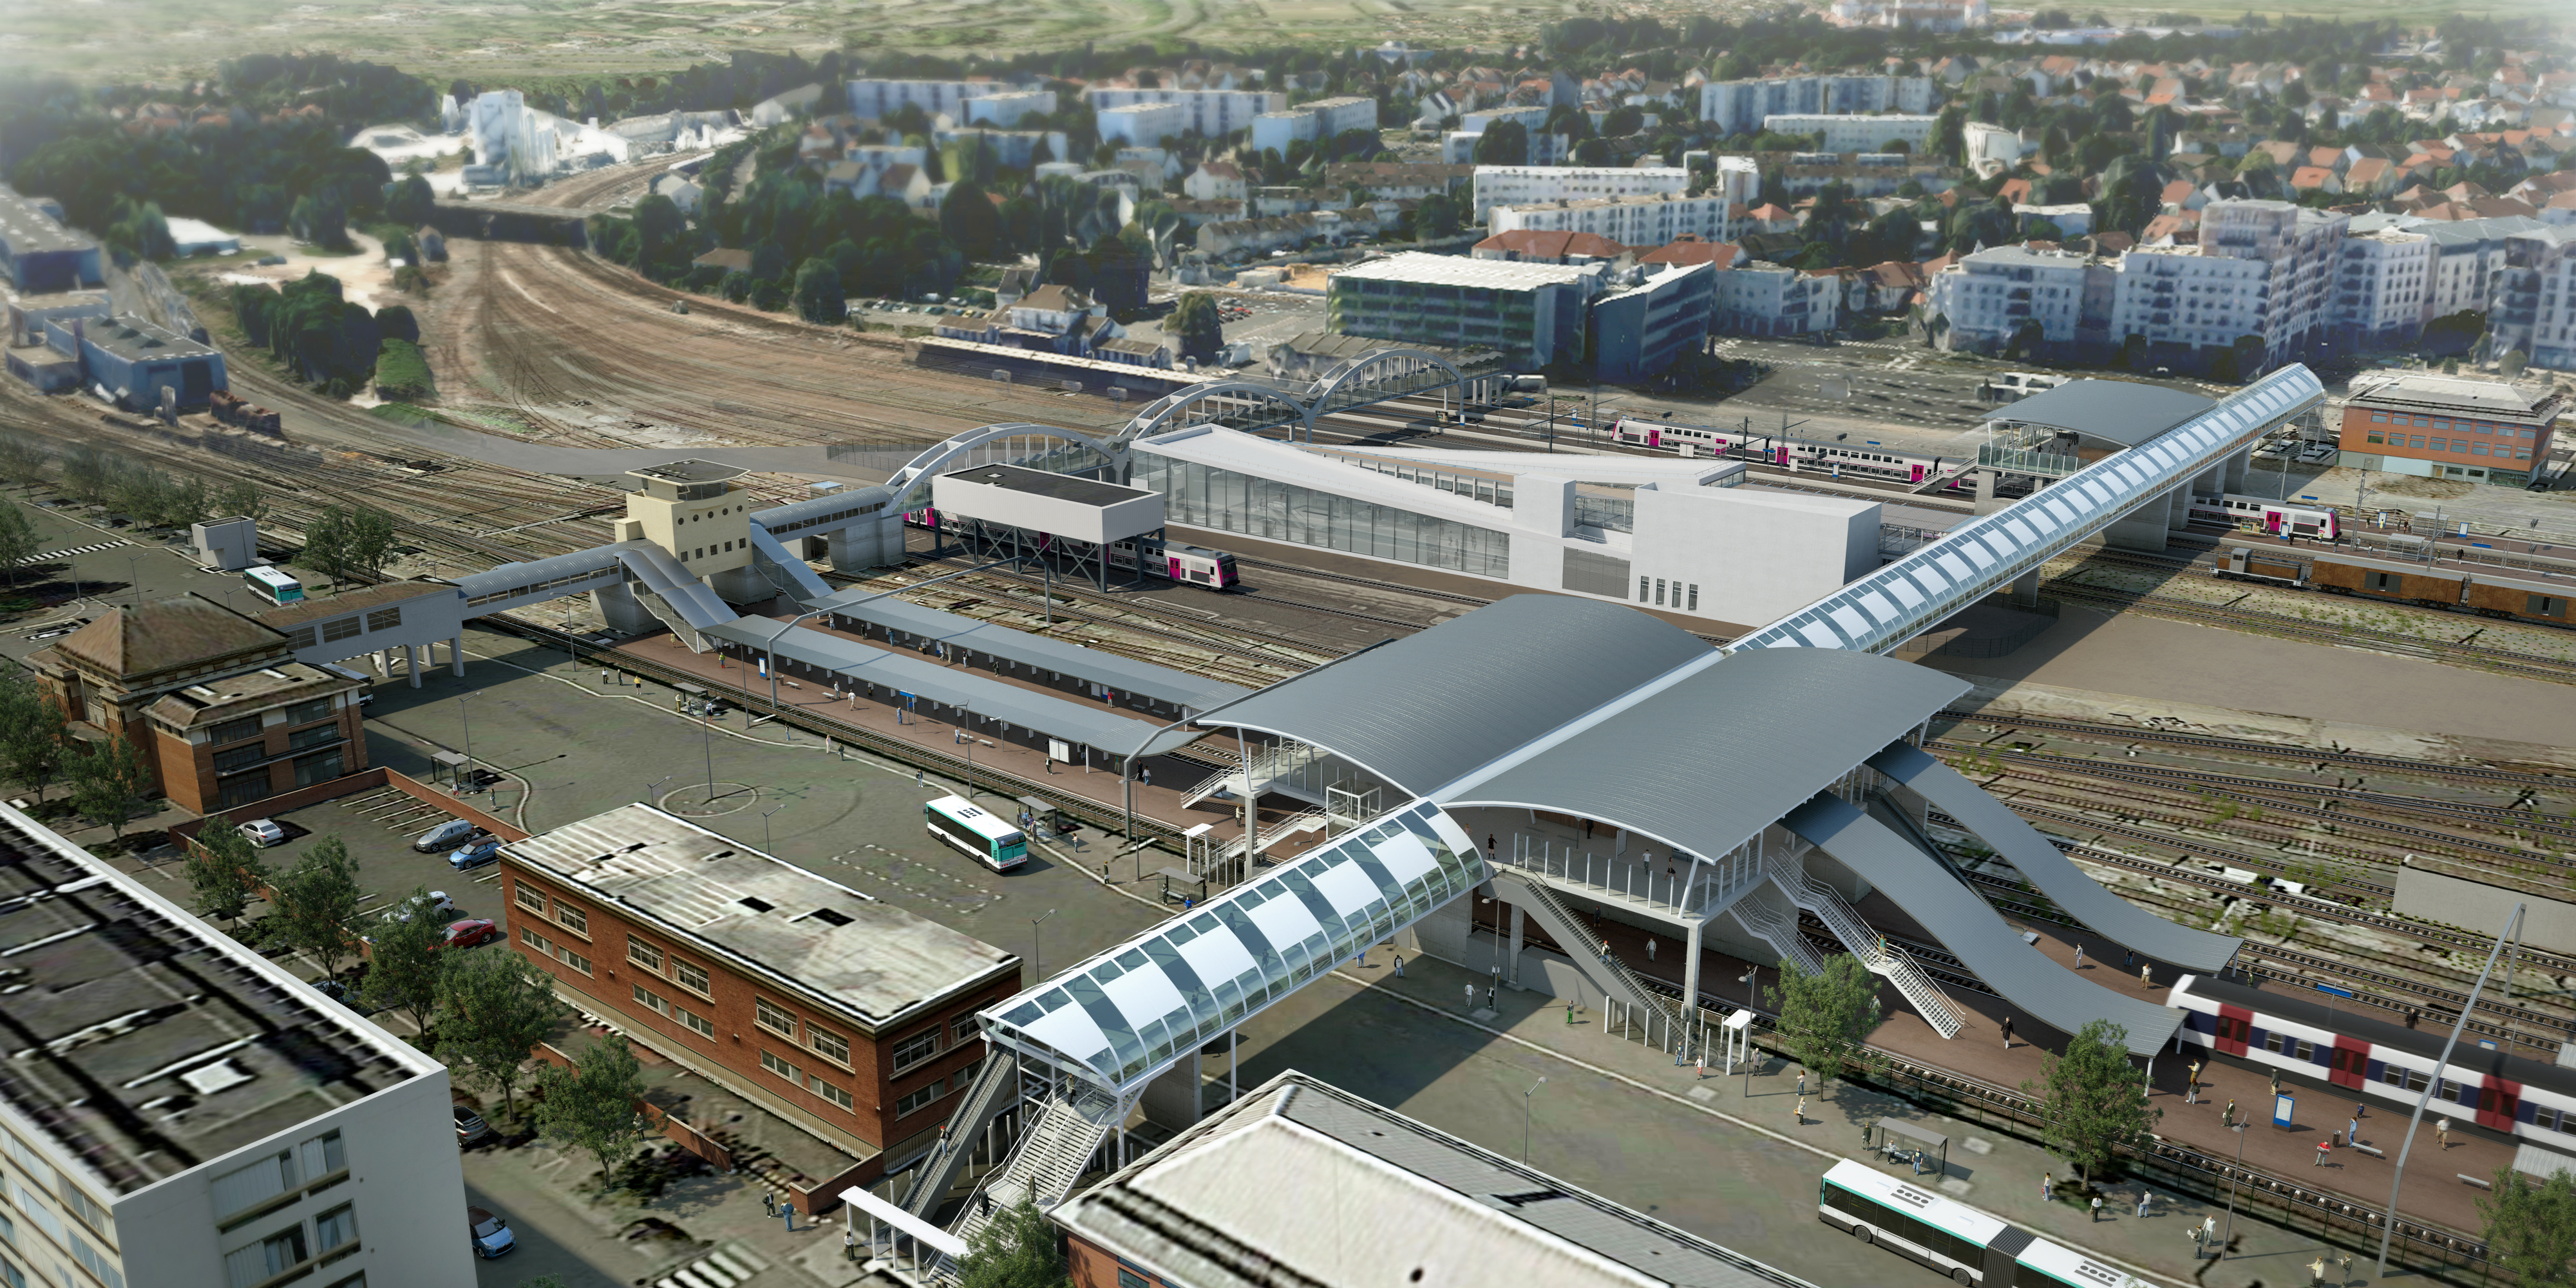 https://www.societedugrandparis.fr/sites/default/files/perspective_aerienne_de_la_gare_massy_-_palaiseau.jpg